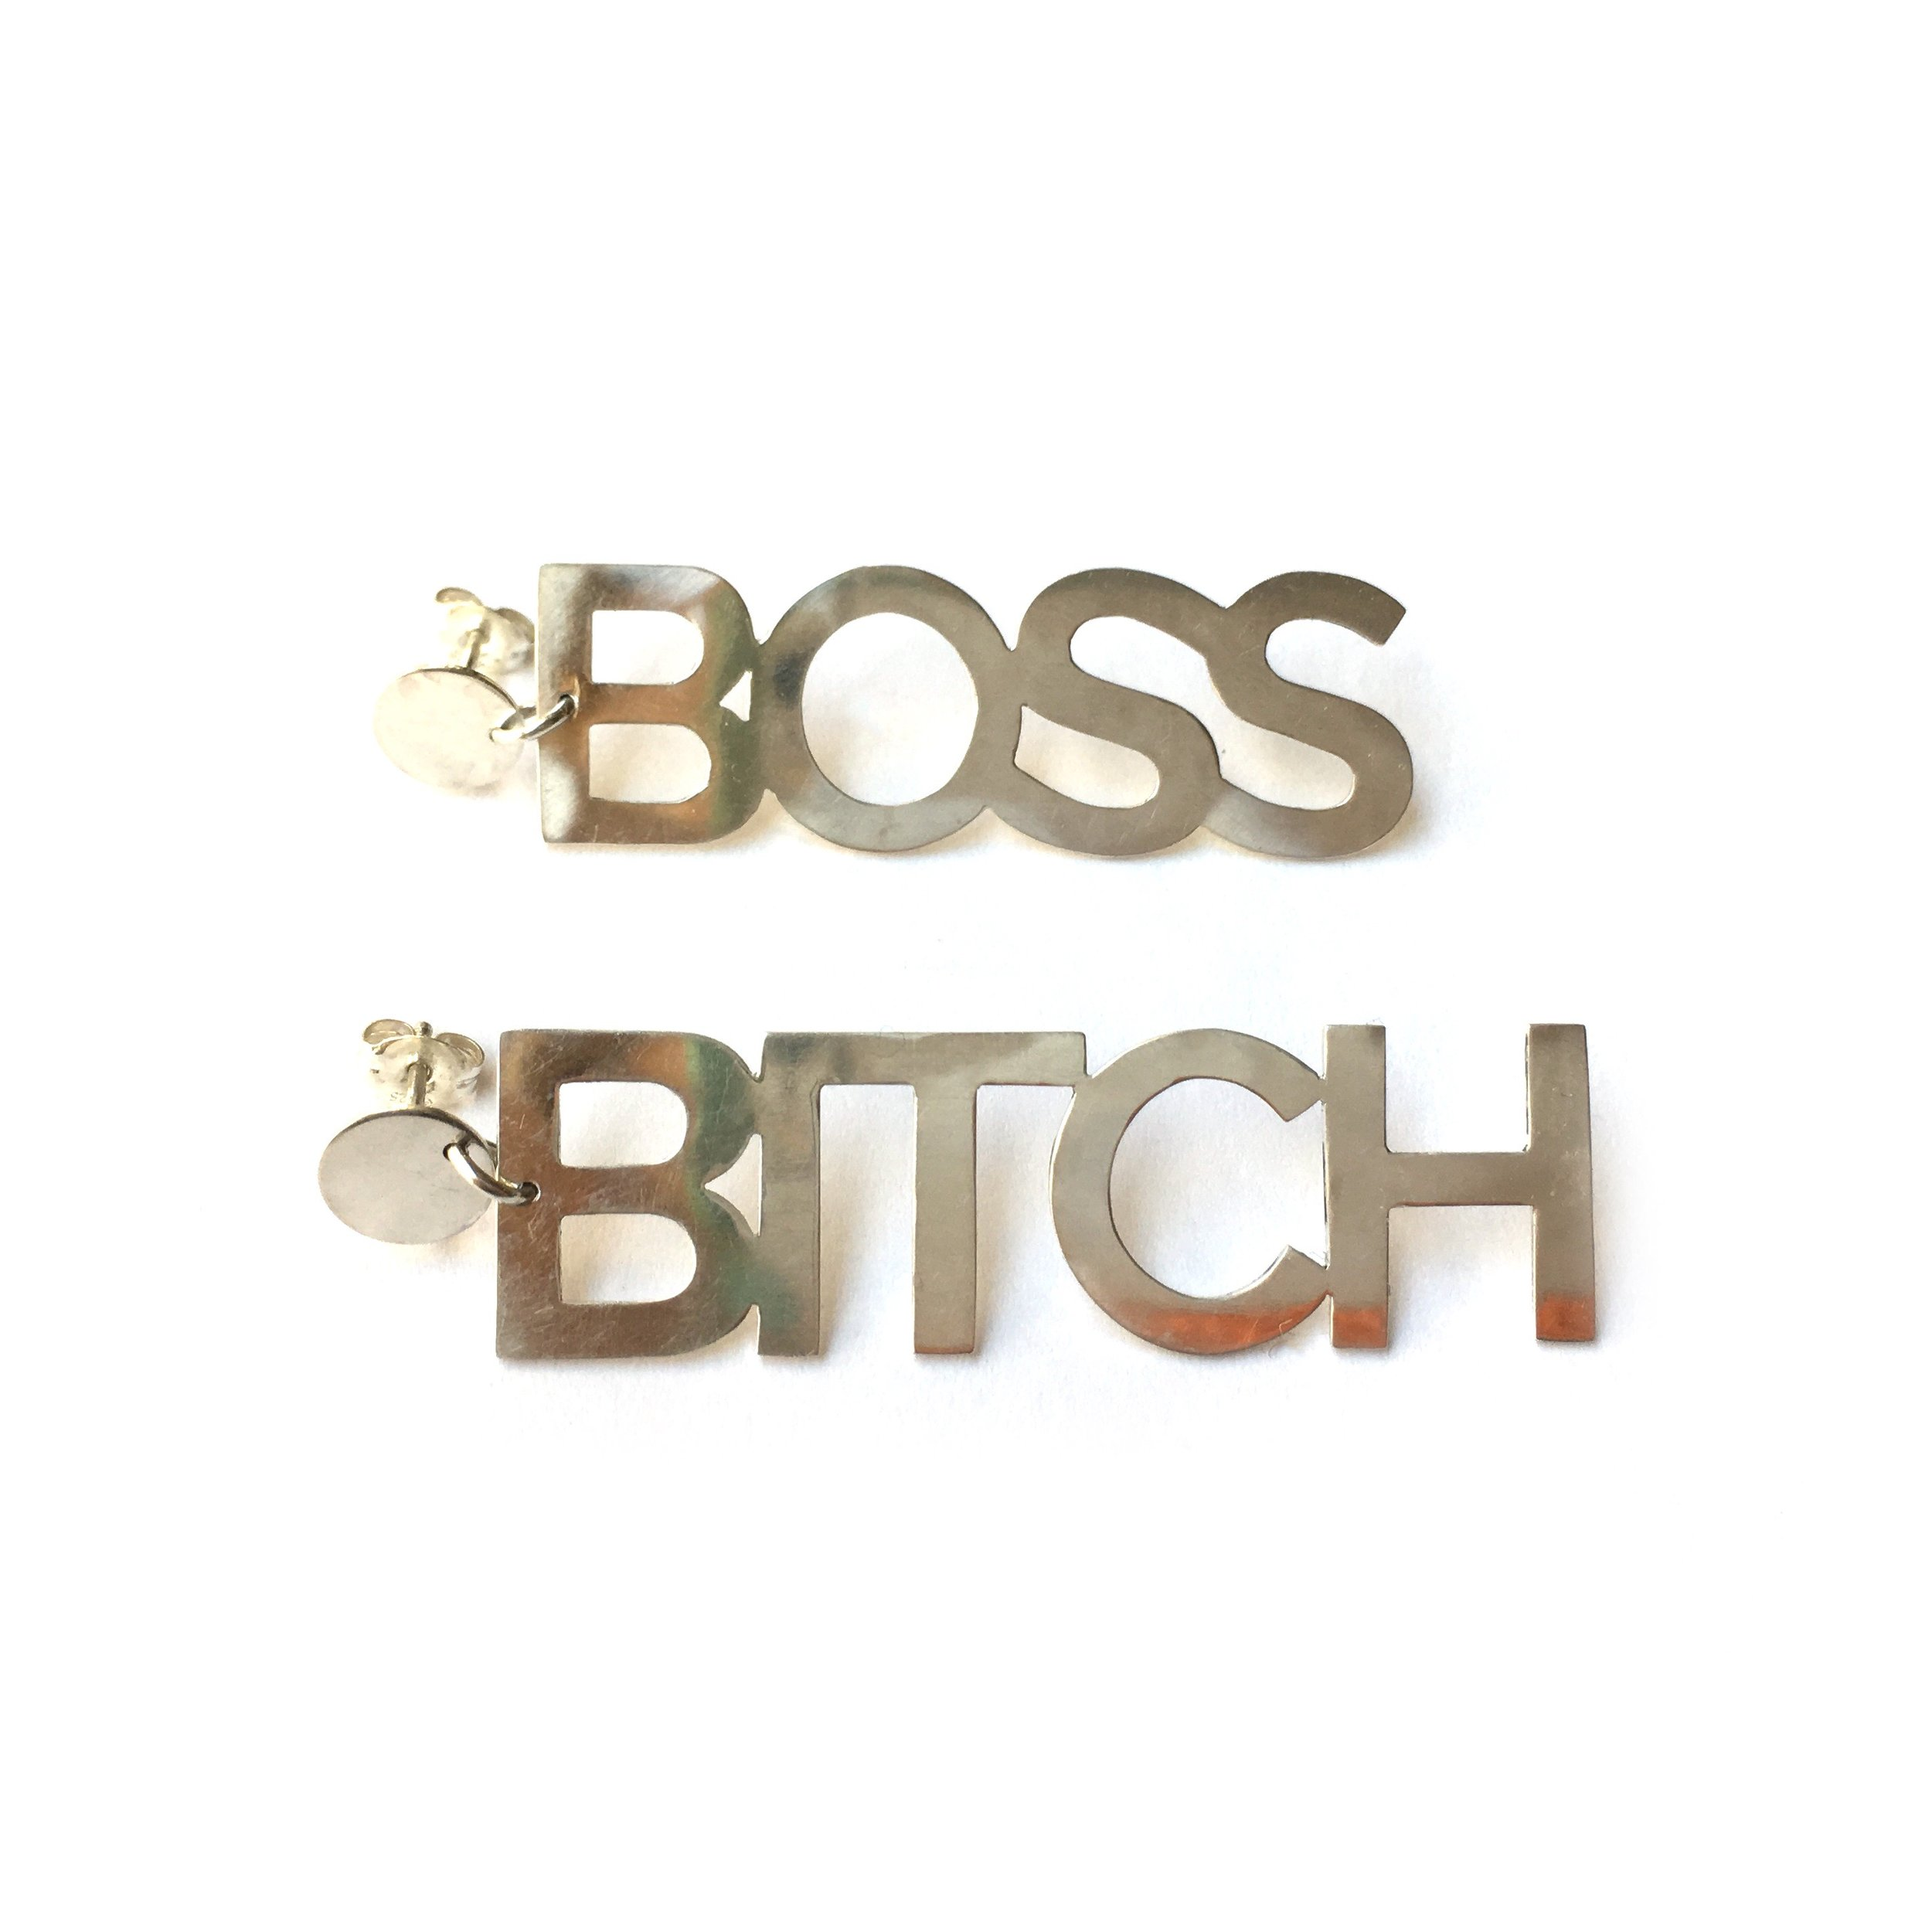 boss bitch earrings.jpeg